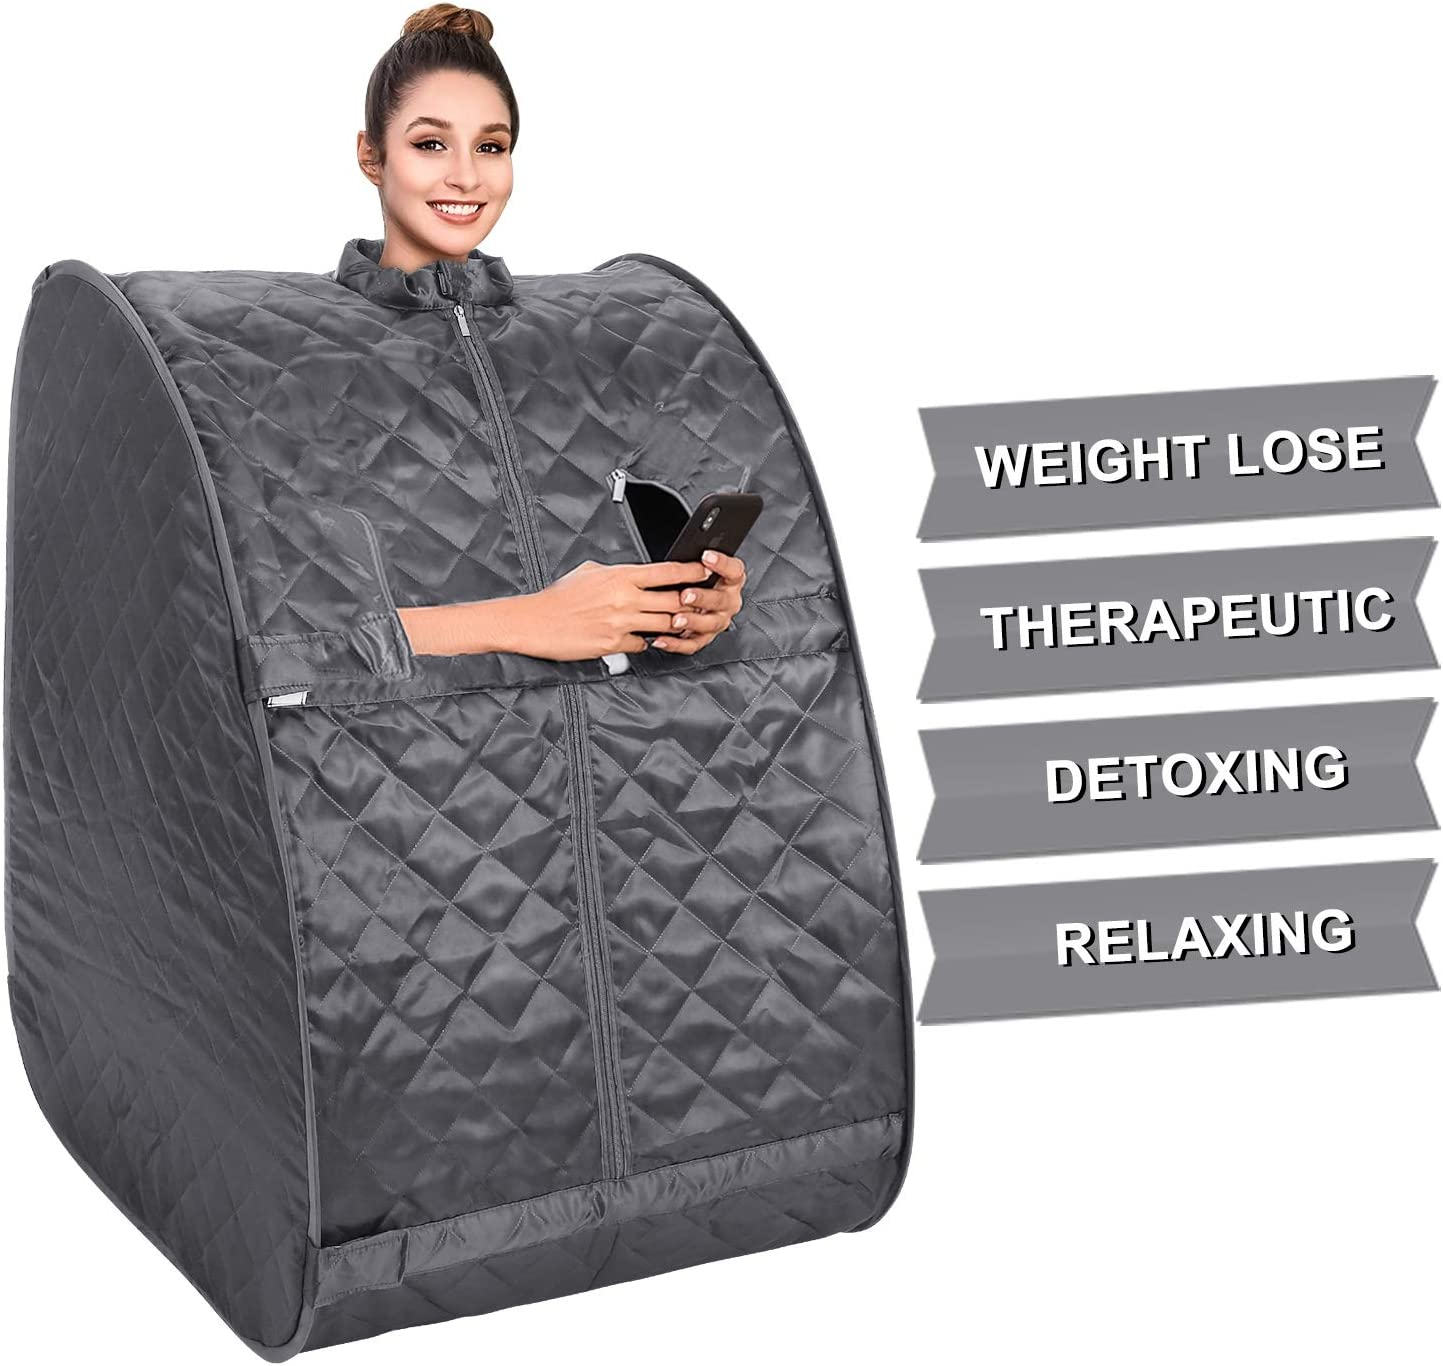 OppsDecor Portable Steam Sauna, 2L Personal Therapeutic Sauna Home Spa for Weight Loss Detox Relaxation Slimming,One Person Sauna with Remote Control,Foldable Chair,Timer US Plug Grey